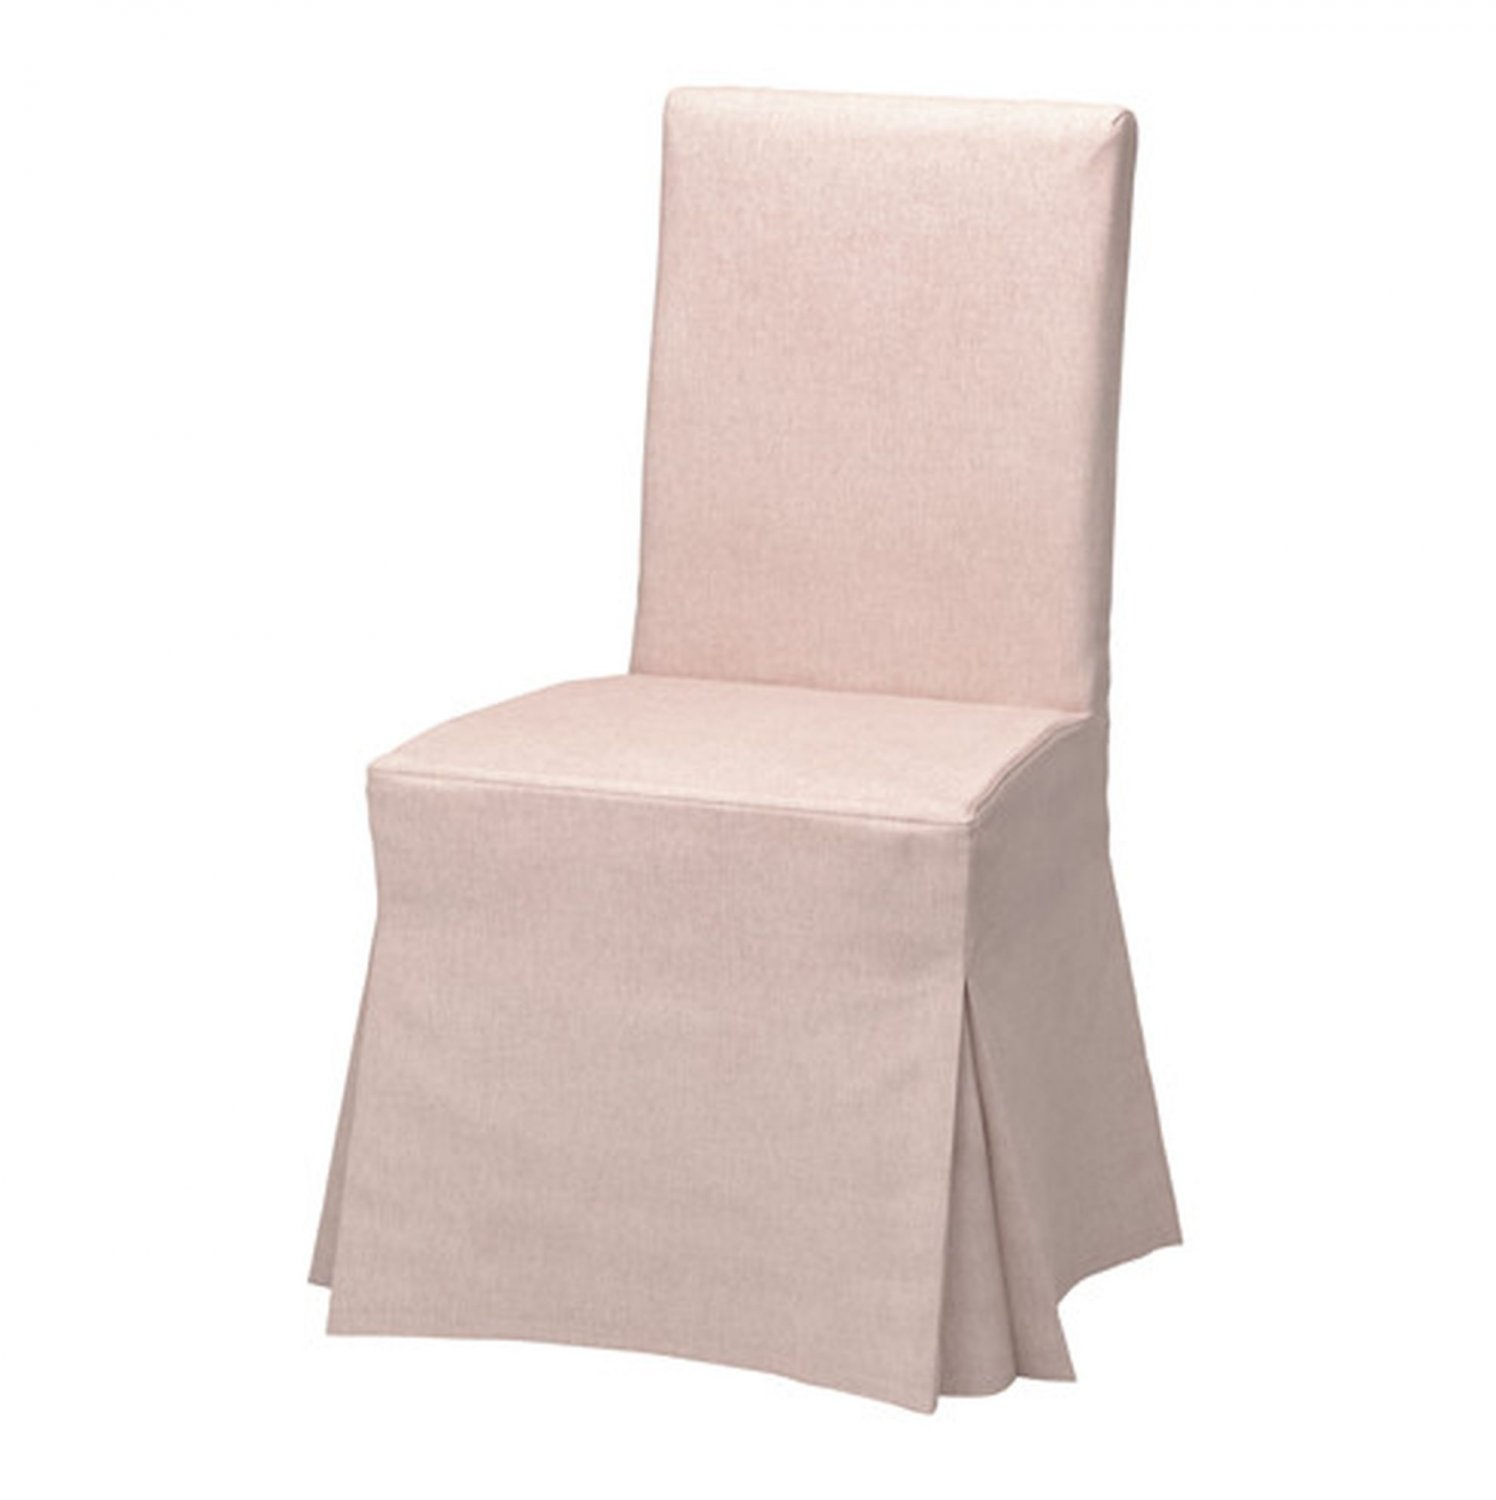 Ikea Henriksdal Chair W Arms Slipcover Cover 21 54cm: IKEA Henriksdal Chair SLIPCOVER Cover Skirted Long